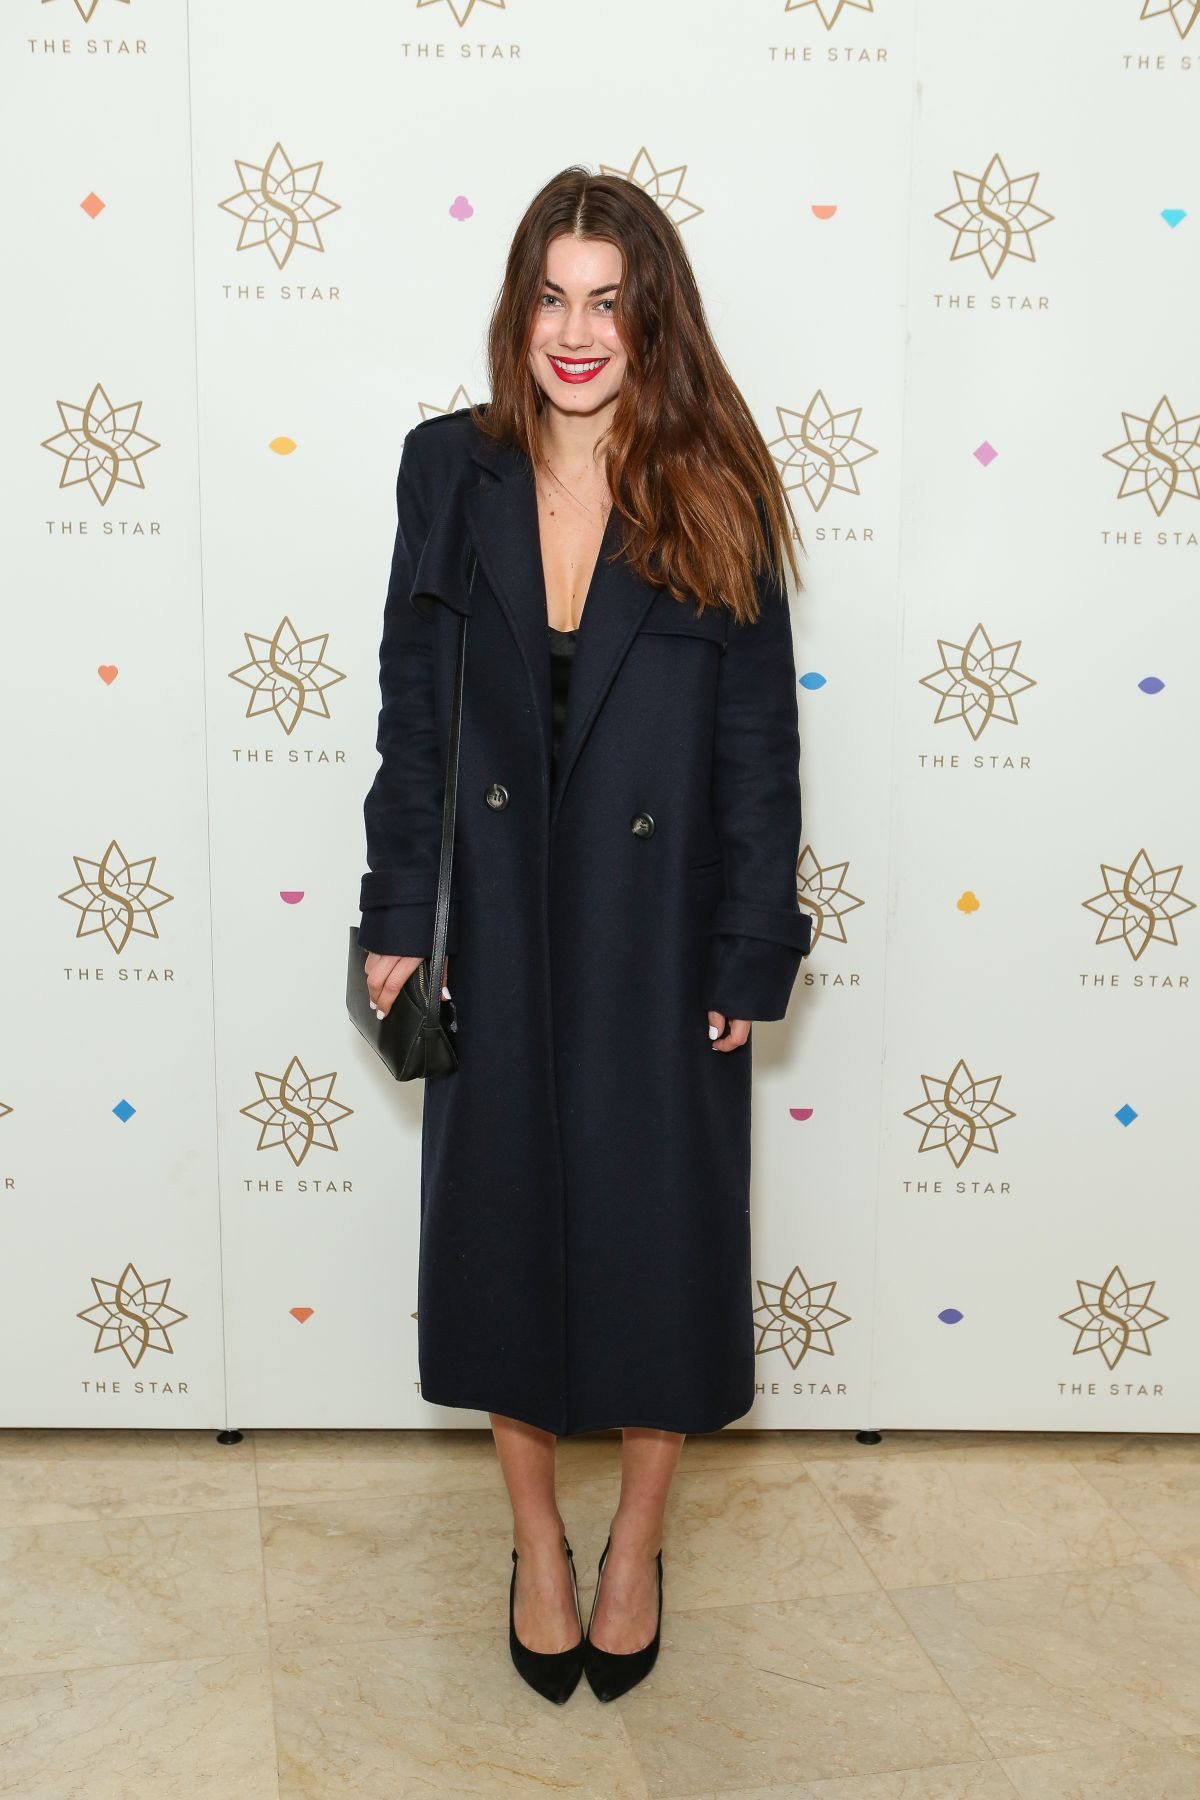 CHARLOTTE BEST at Studios at the Star Launch in Sydney 07/19/2017